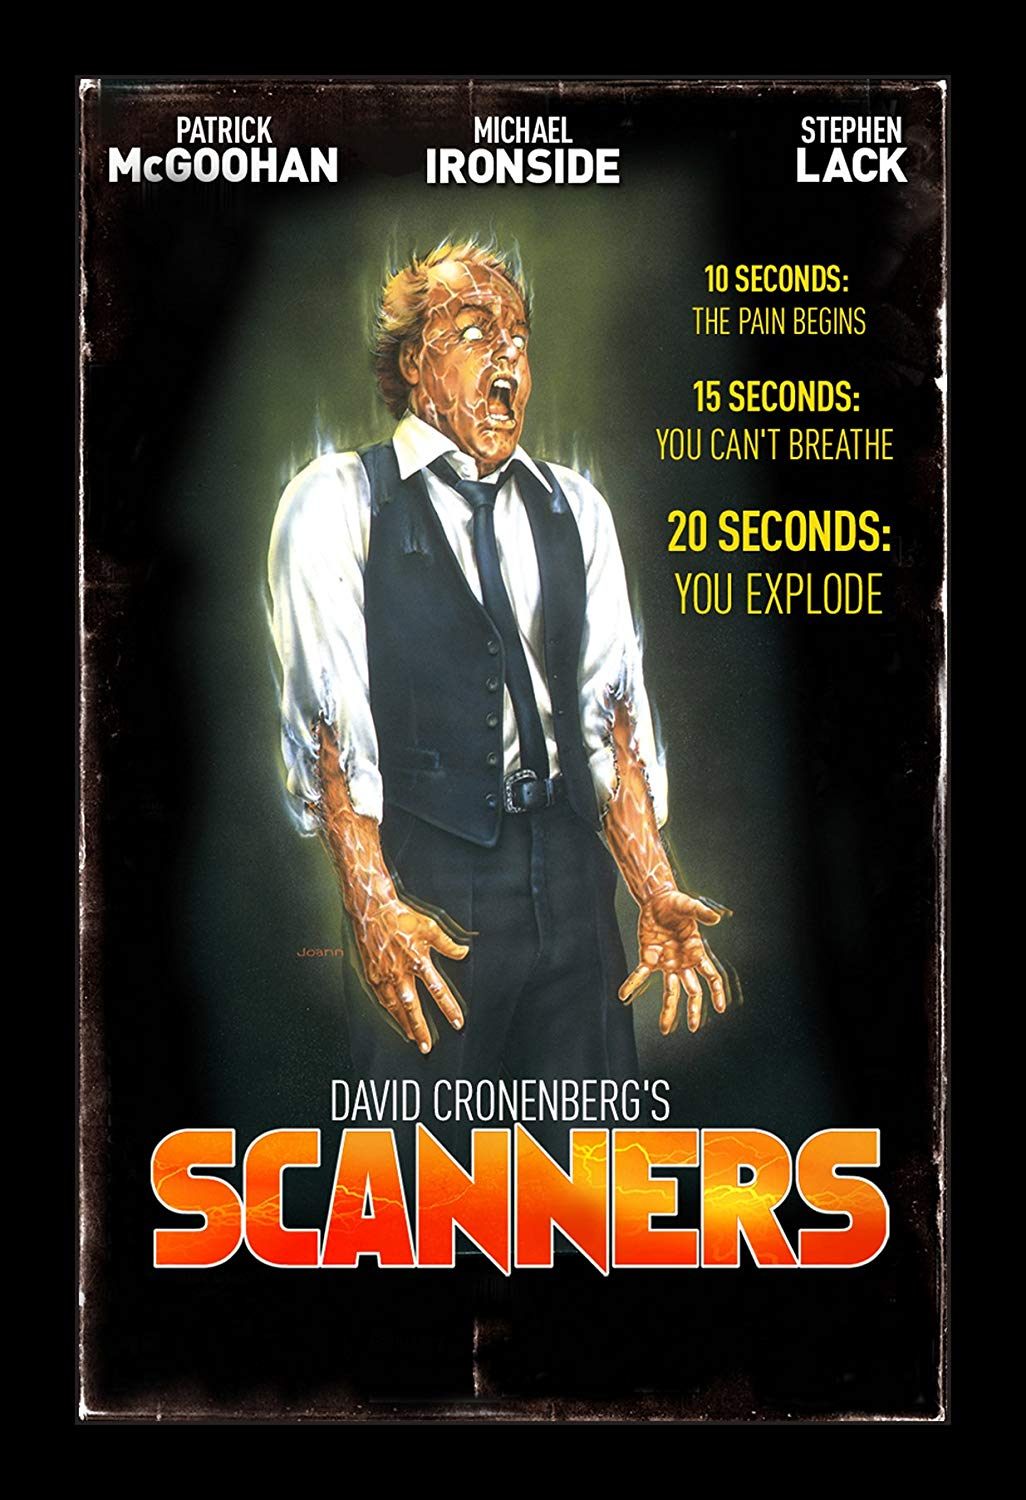 Scanners (1981) - Directed By: David CronenbergStarring: Stephen Lack, Jeniffer O'Neill, Patrick McGoohan, Michael IronsideRated: RRun Time: 1h 43mTMM Score: 5 StarsStrengths: Special Effects, Surreal AtmosphereWeakness: Confusing Plot Thread